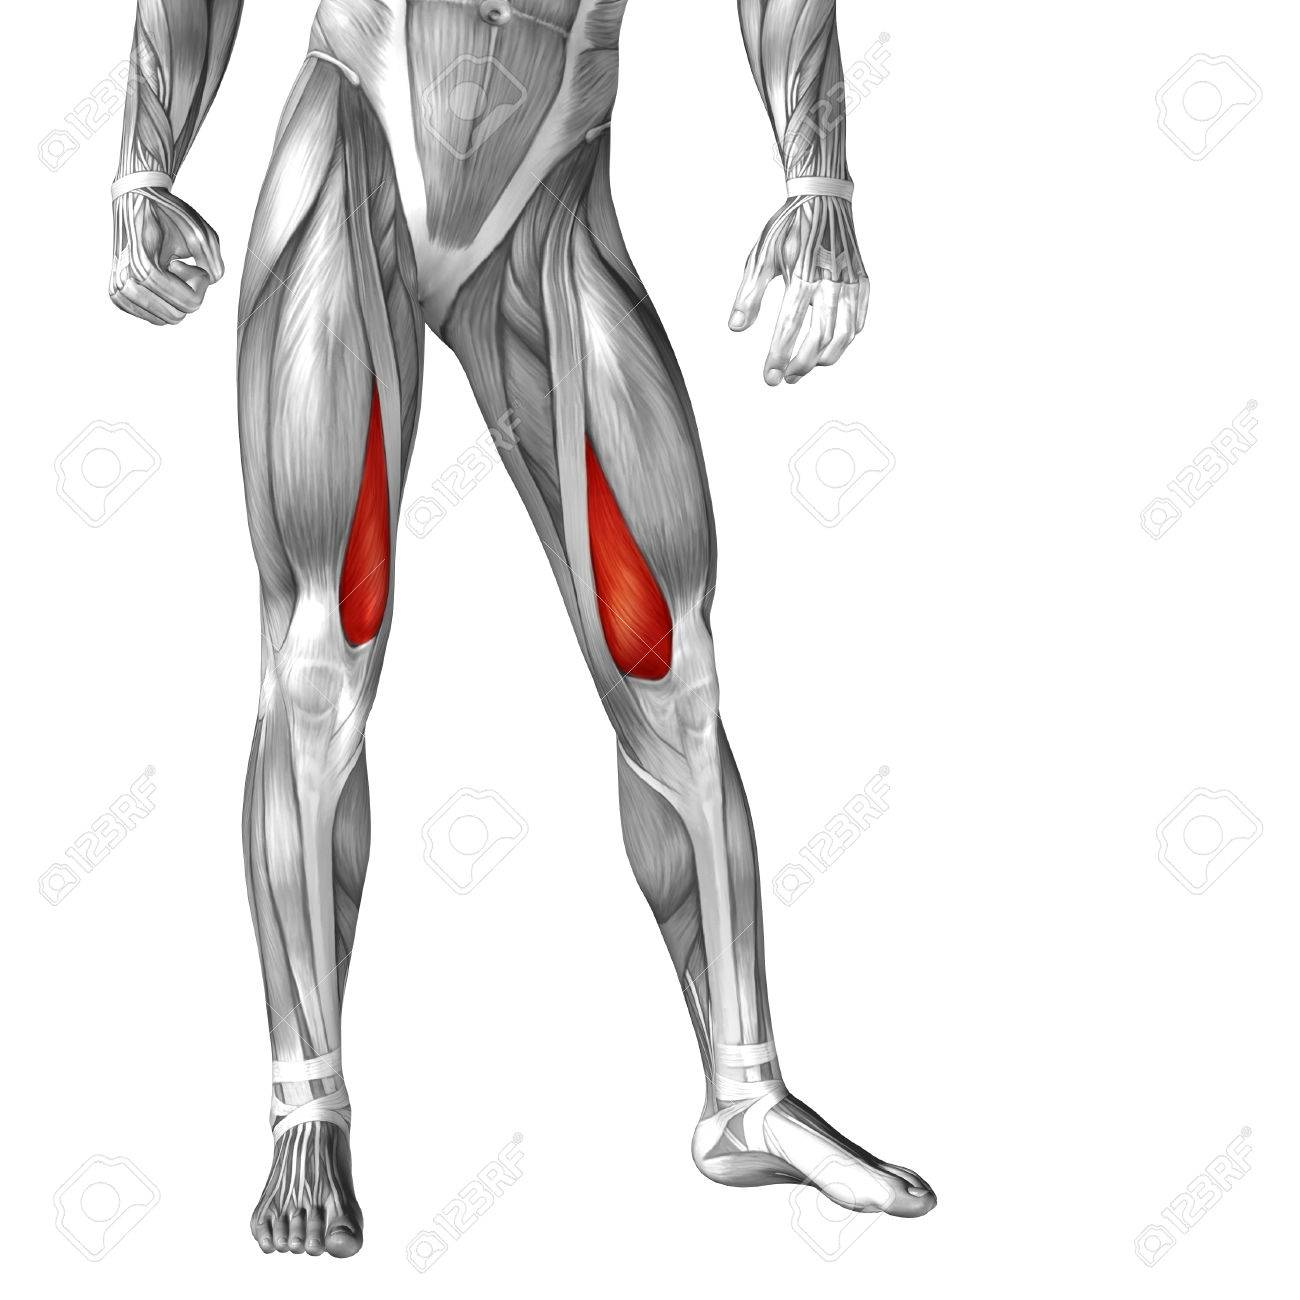 Upper Leg Muscles Anatomy Images - human body anatomy